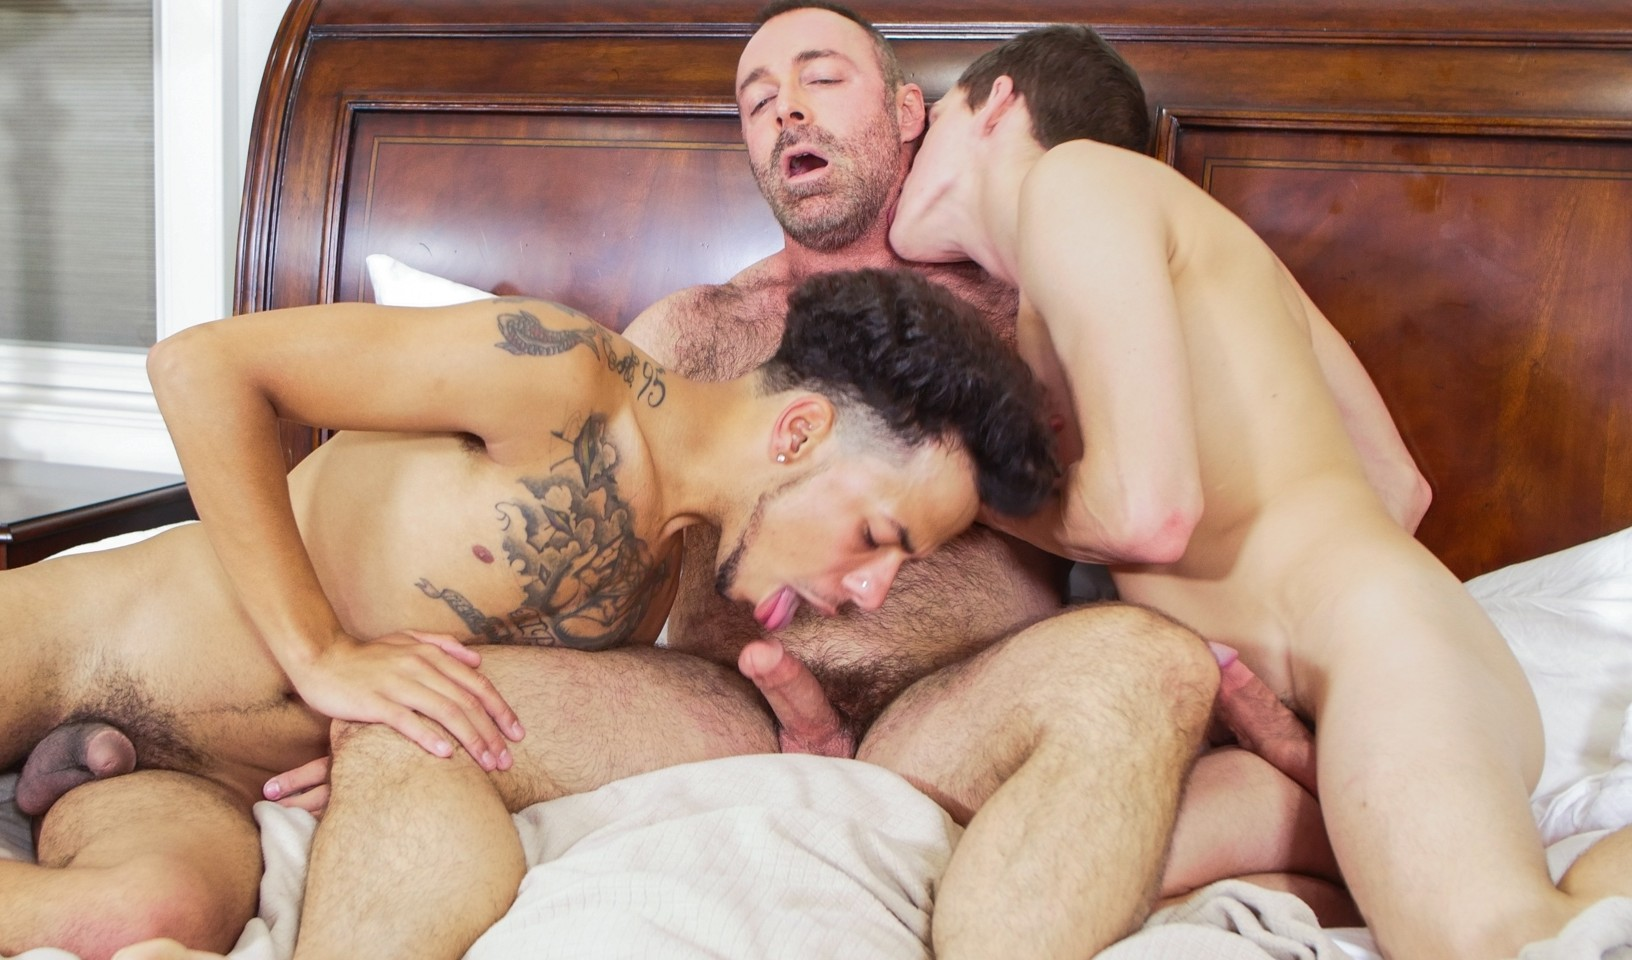 Kory Houston, Tayveon Martin and Brad Kalvo 1